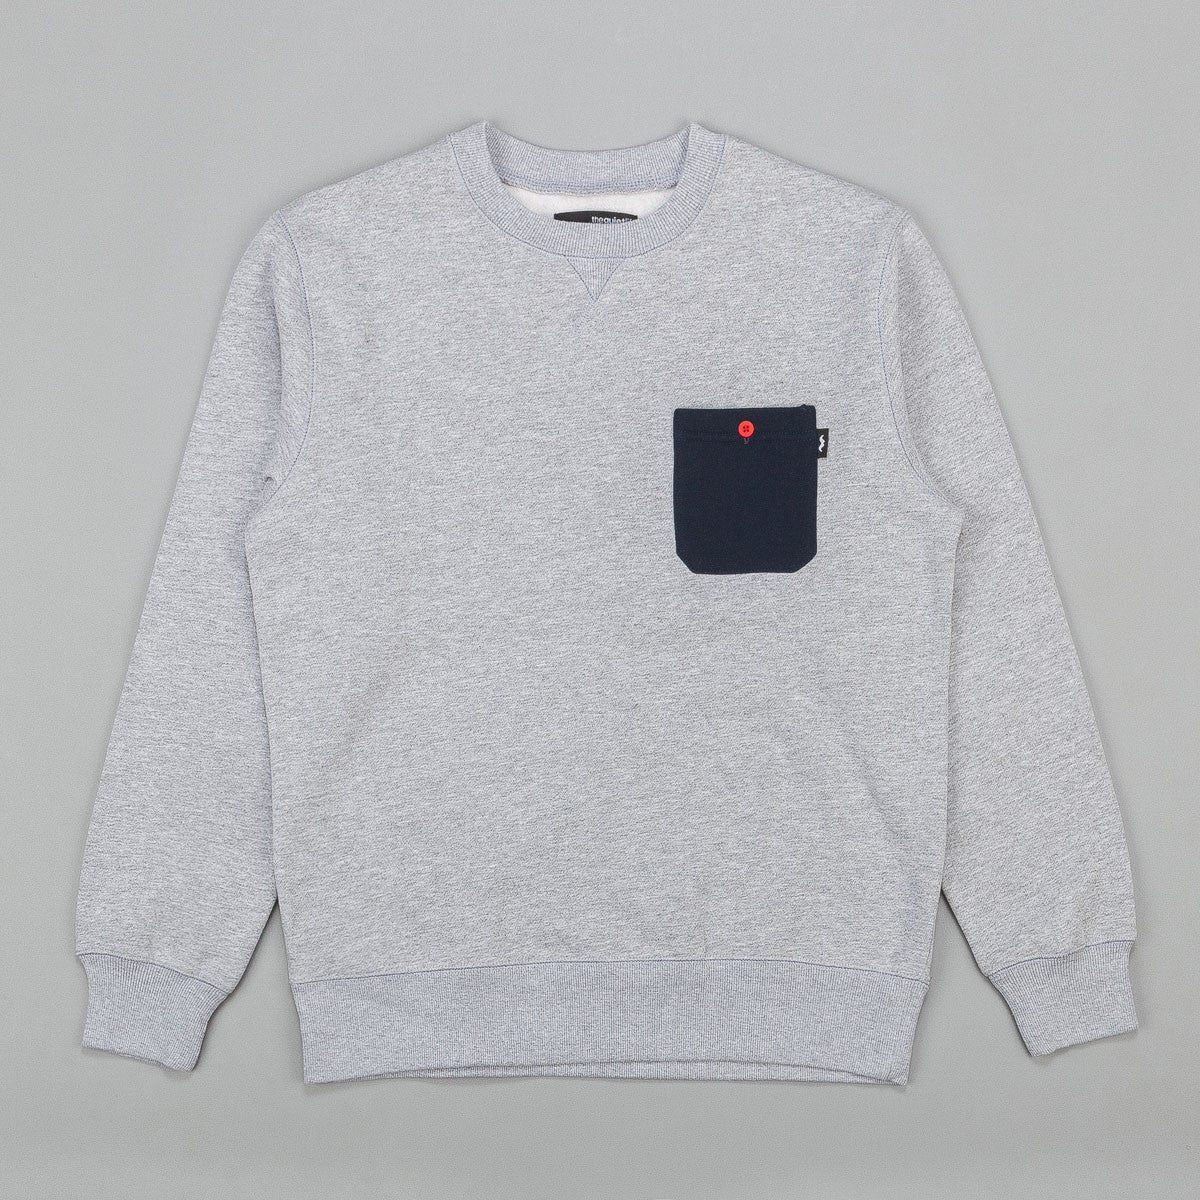 The Quiet Life Professor Pocket Crew Neck Sweatshirt